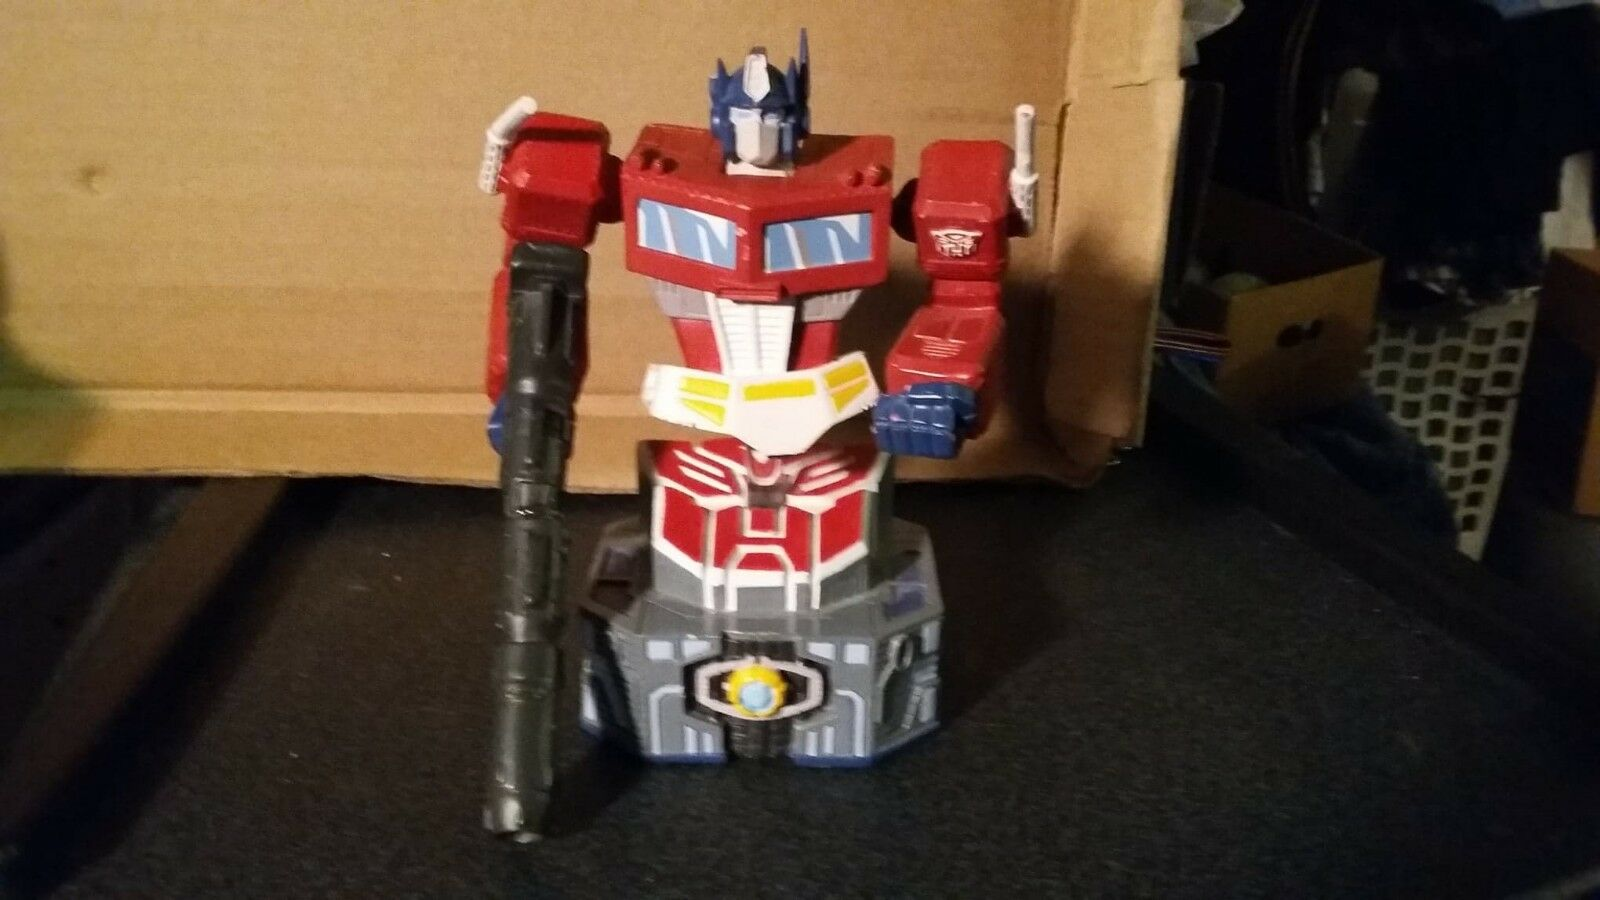 Rare Transformers G1 Optimus Prime Bust Diamond Select 3181500 With Issues